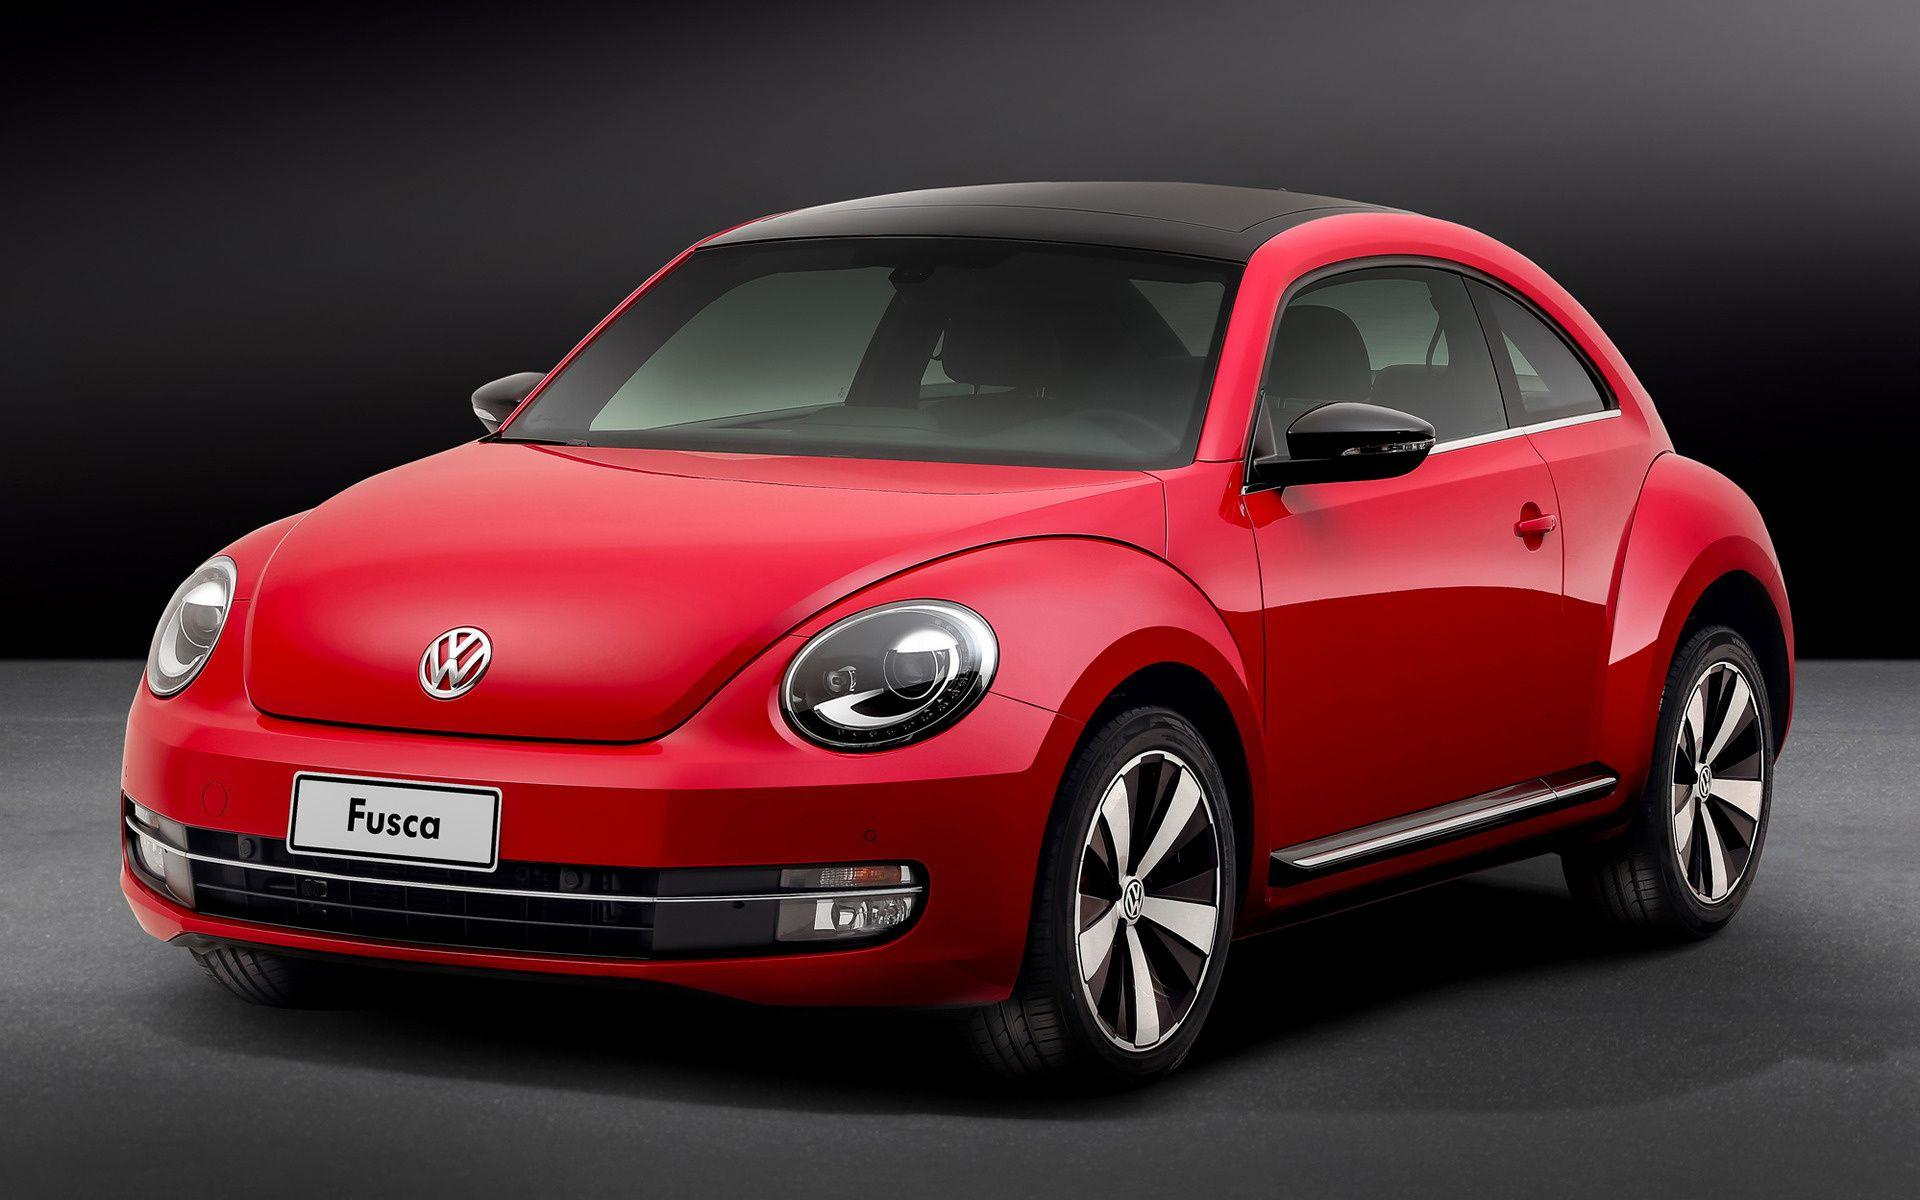 Volkswagen Fusca (2012) Wallpapers and HD Images - Car Pixel